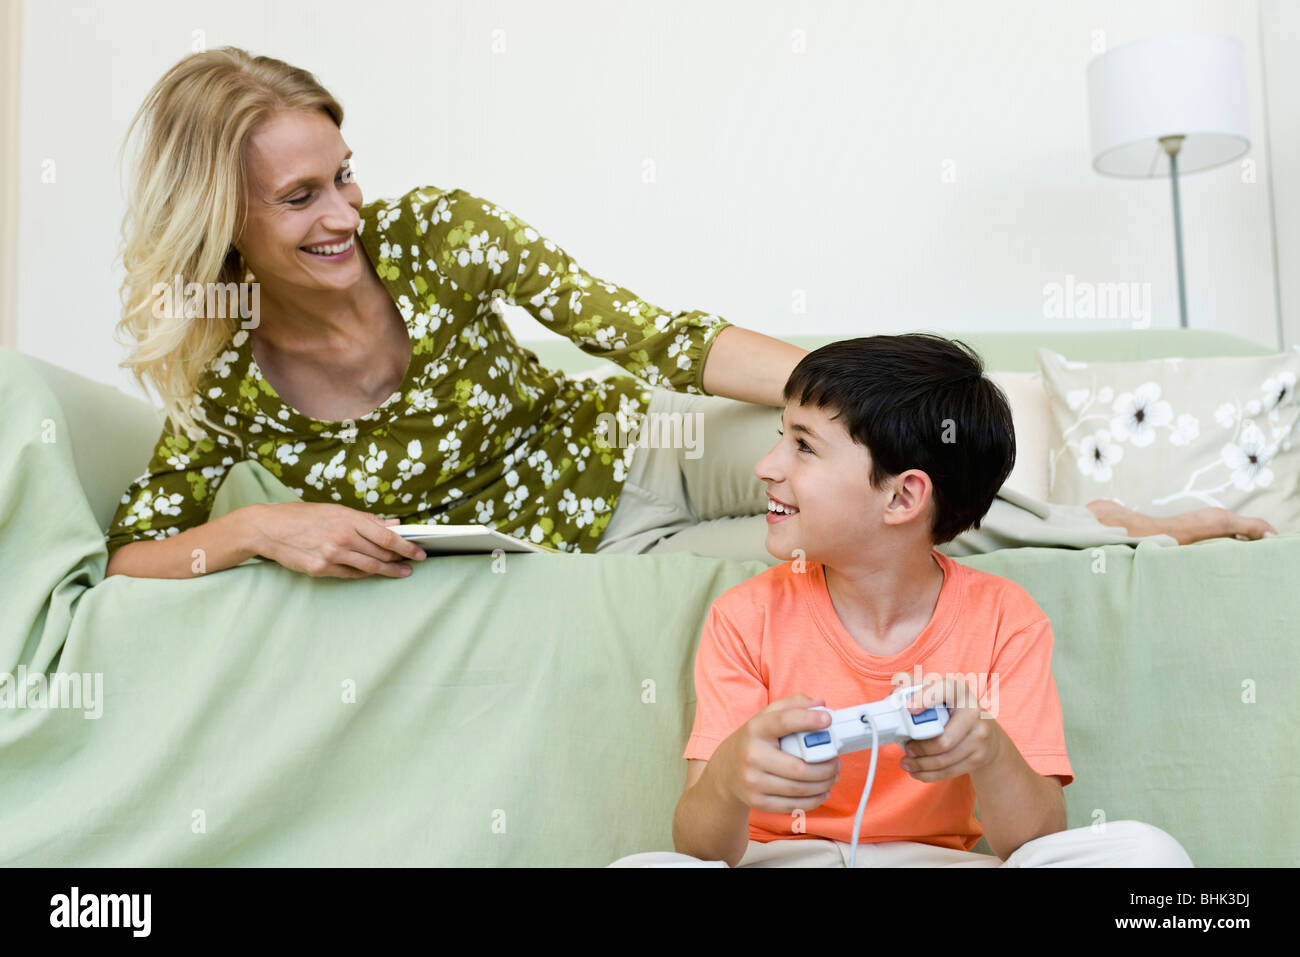 Young boy sitting on floor playing video game looking up at mother relaxing on sofa - Stock Image